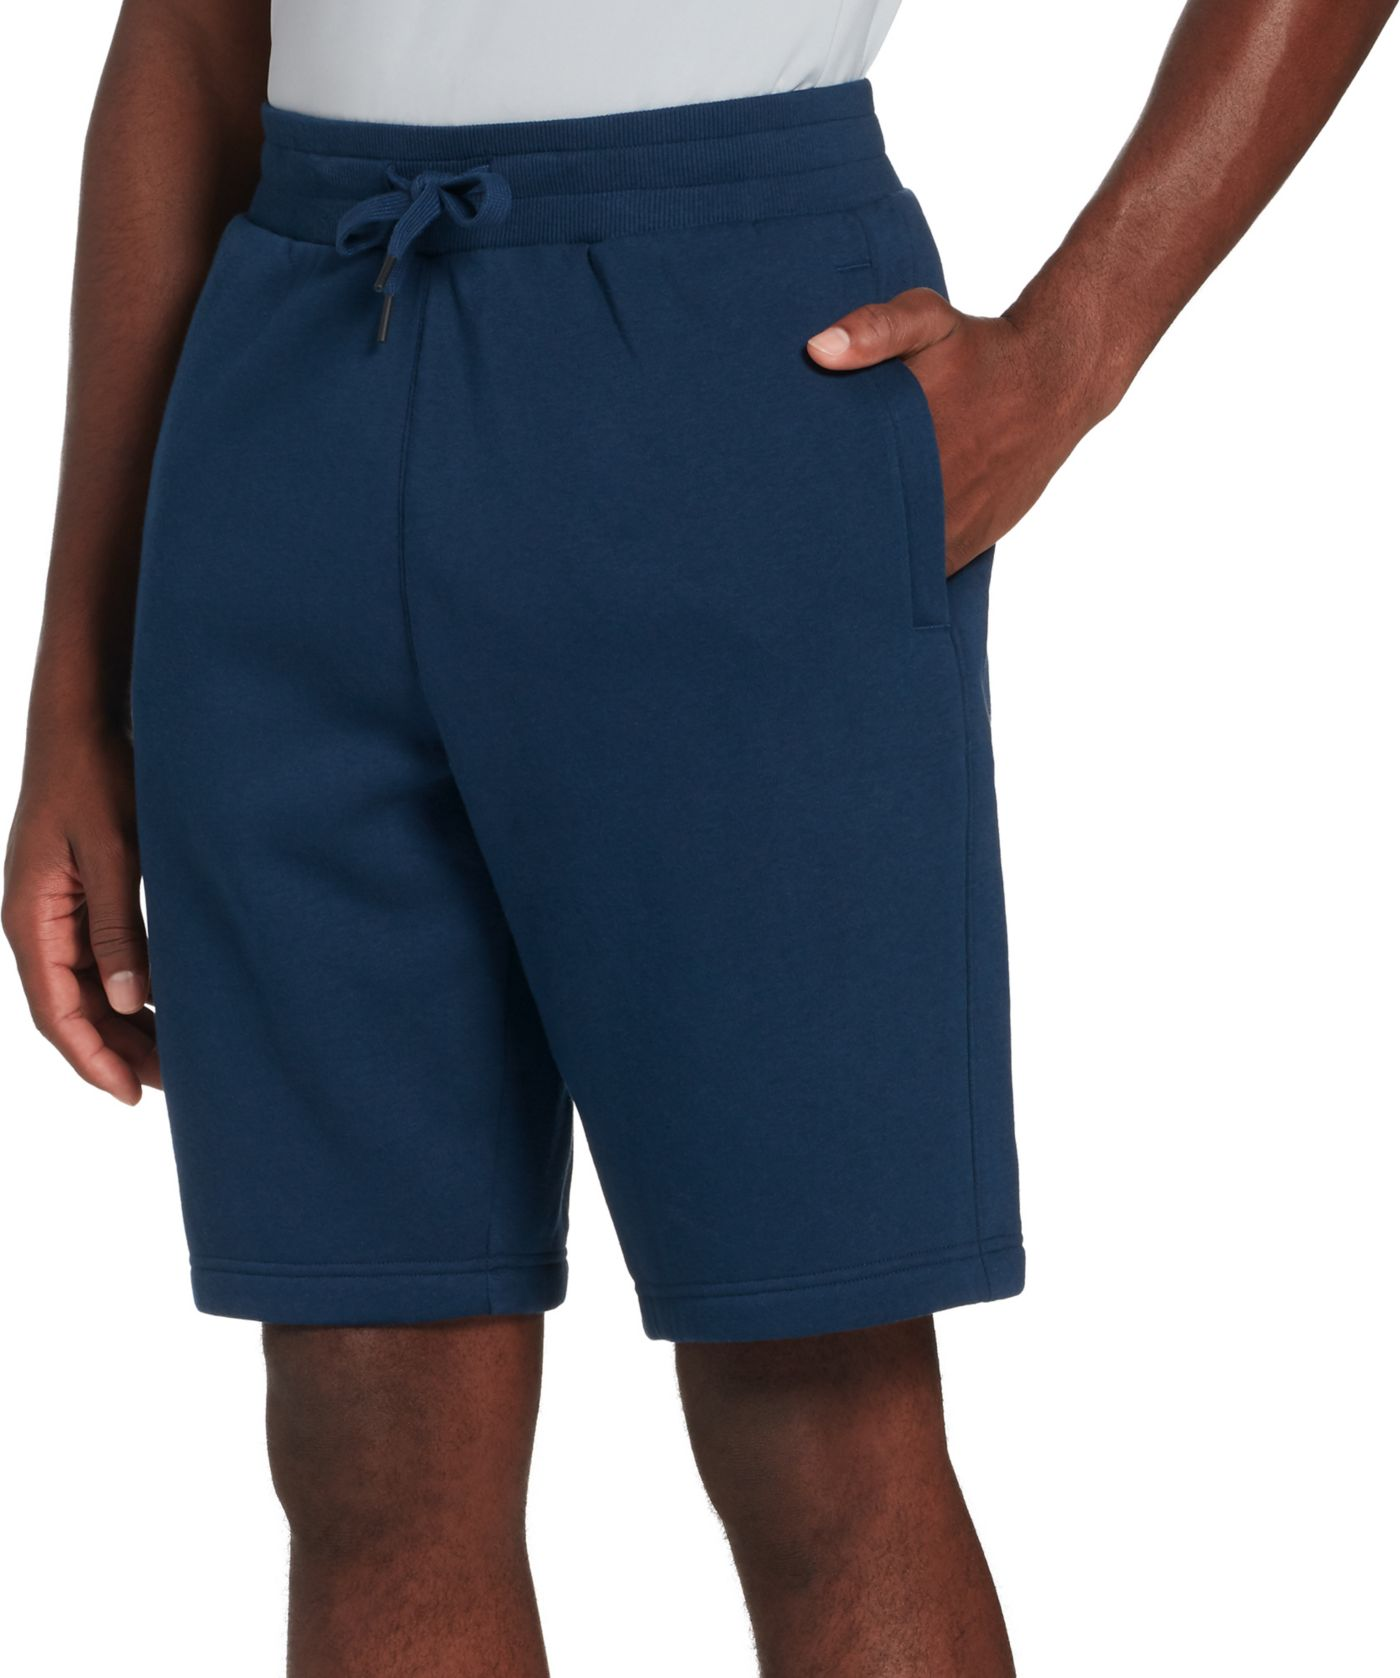 Under Armour Men's Rival Fleece Shorts